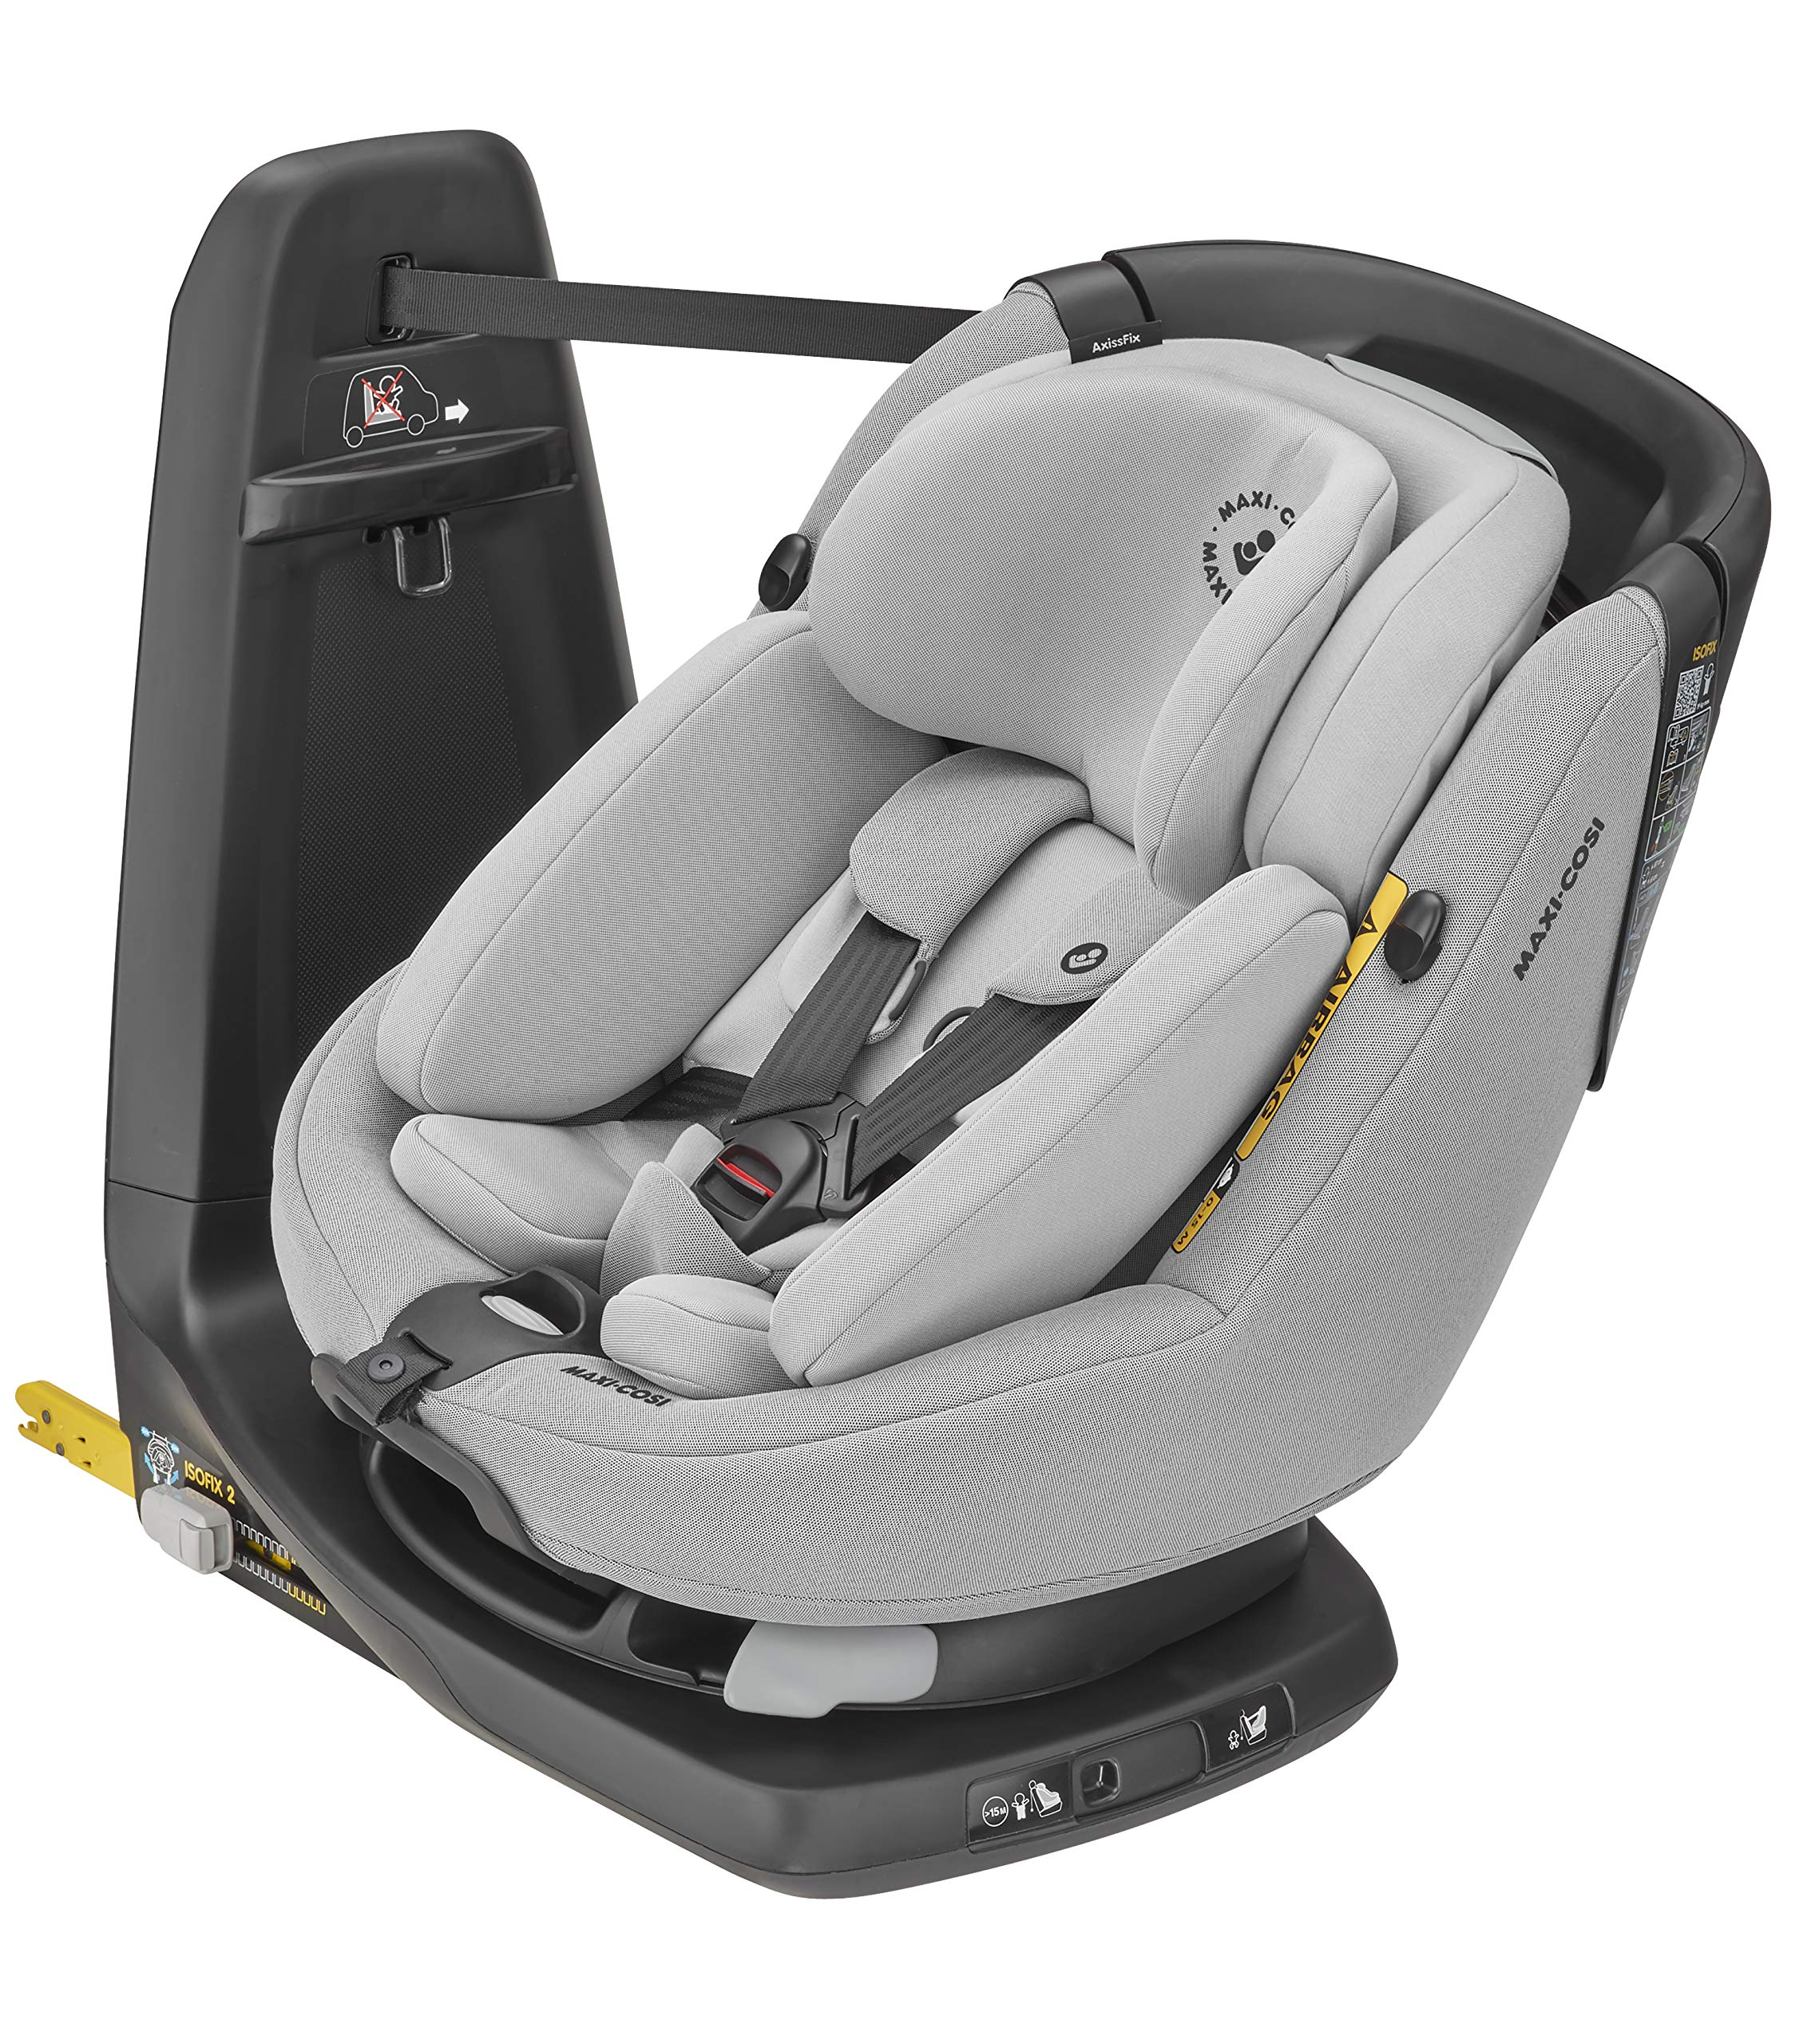 Maxi-Cosi Axissfix Plus Convertible Car Seat, Swivel Car Seat, Suitable from Birth, 0 Months - 4 Years, 45-105 cm,Authentic Grey Maxi-Cosi Convertible car seat from baby to toddler, suitable from birth up to 4 years (45 - 105 cm) 360° swivel car seat, allows you to get your child in and out the seat in seconds I-size (r129) car seat legislation, because of improved side protection and extended rearward-facing travel 1